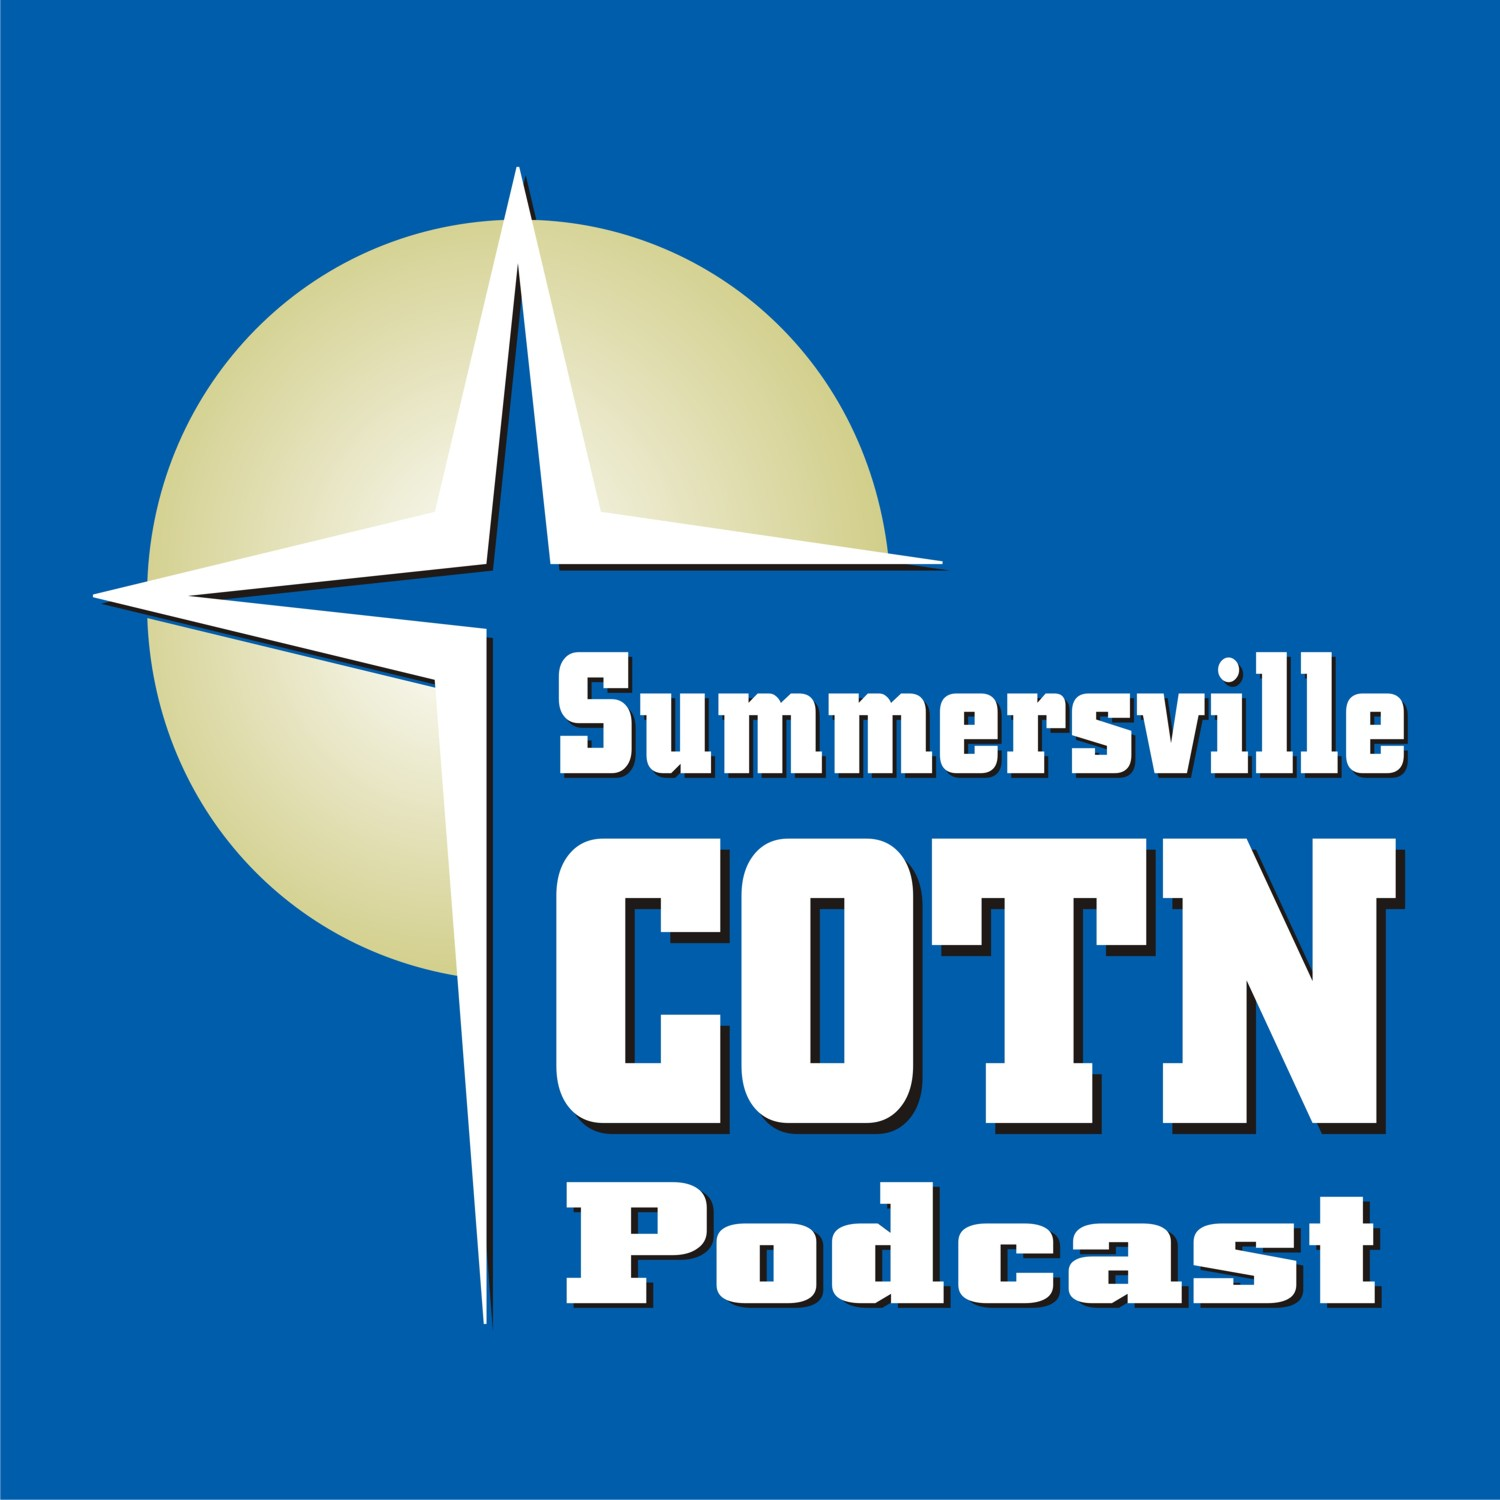 Summersville COTN Podcast